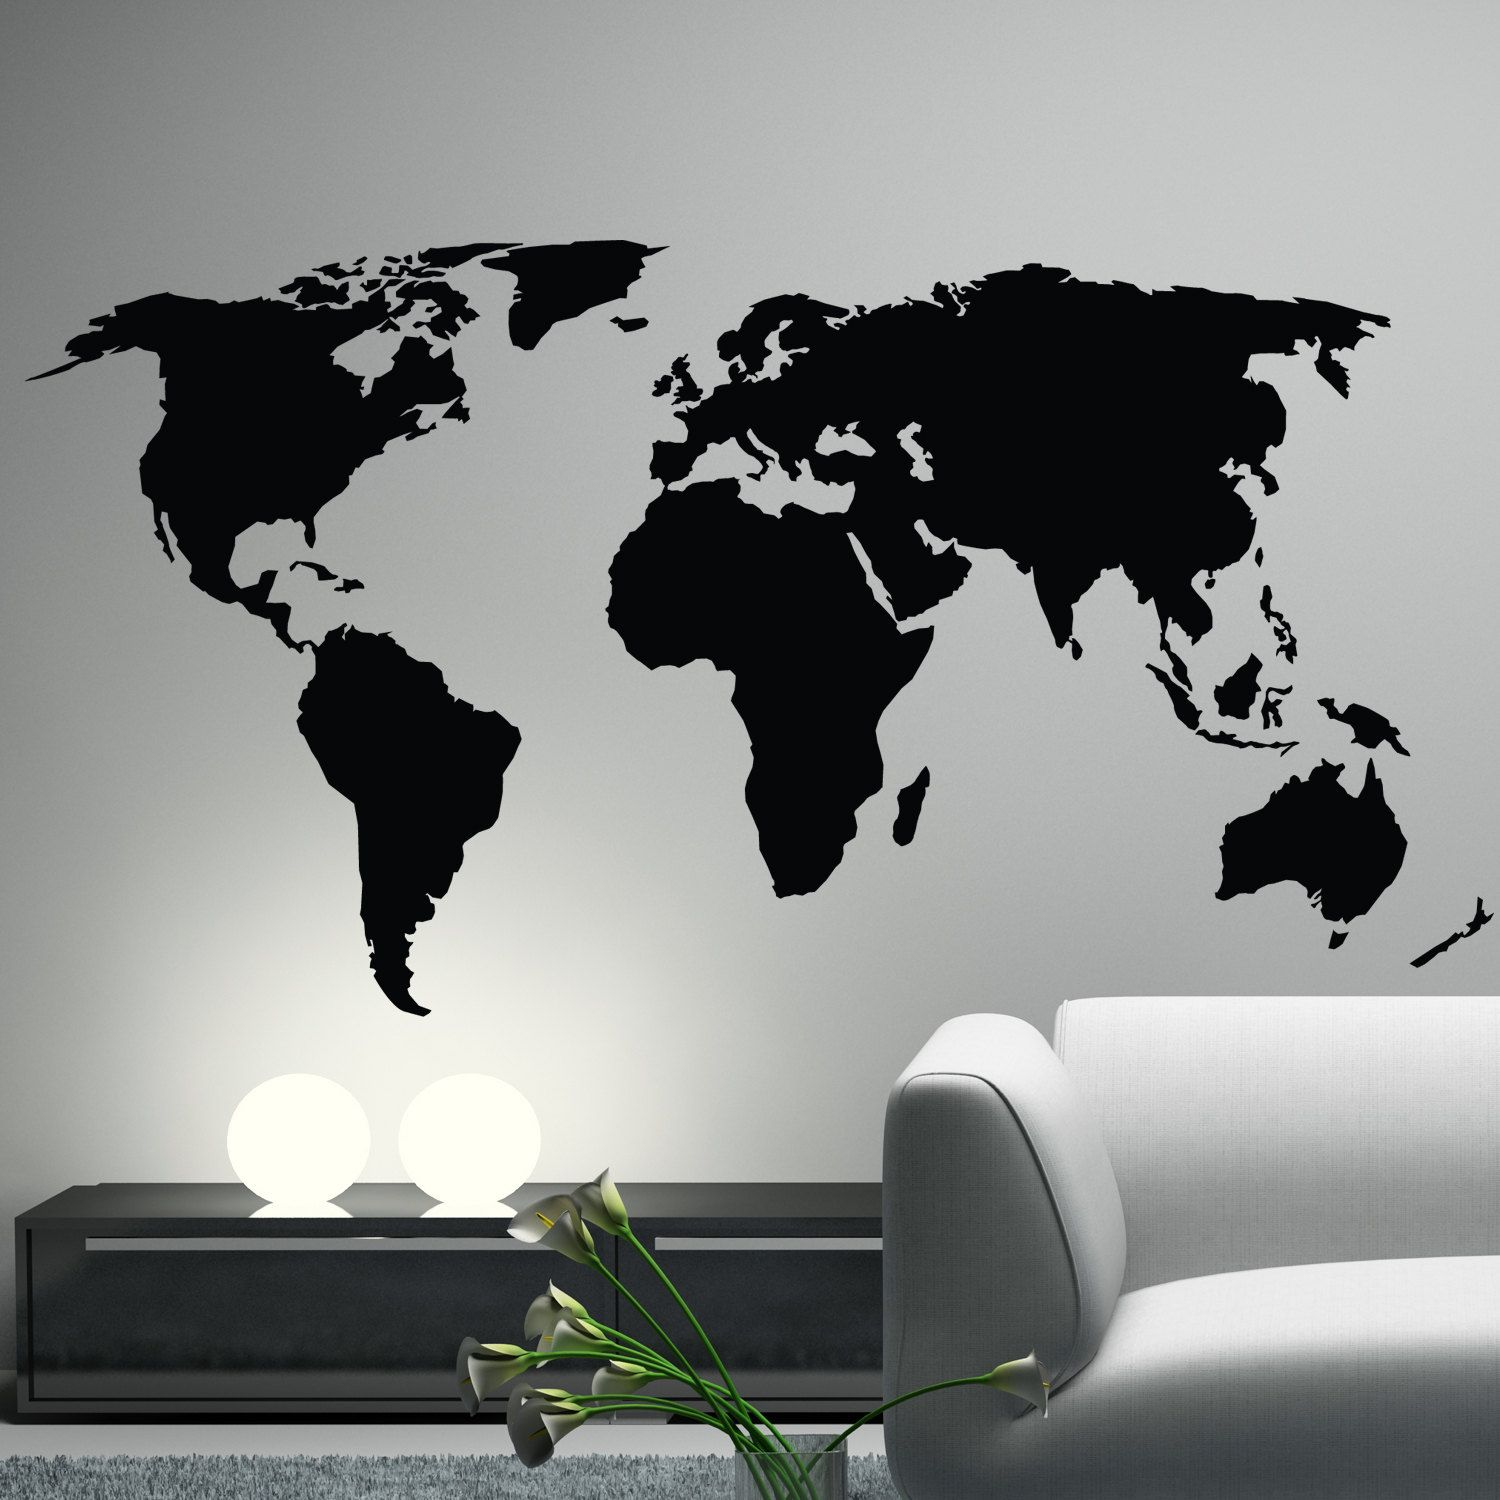 Office Decor World Map Wall Decal Sticker World Country Atlas the